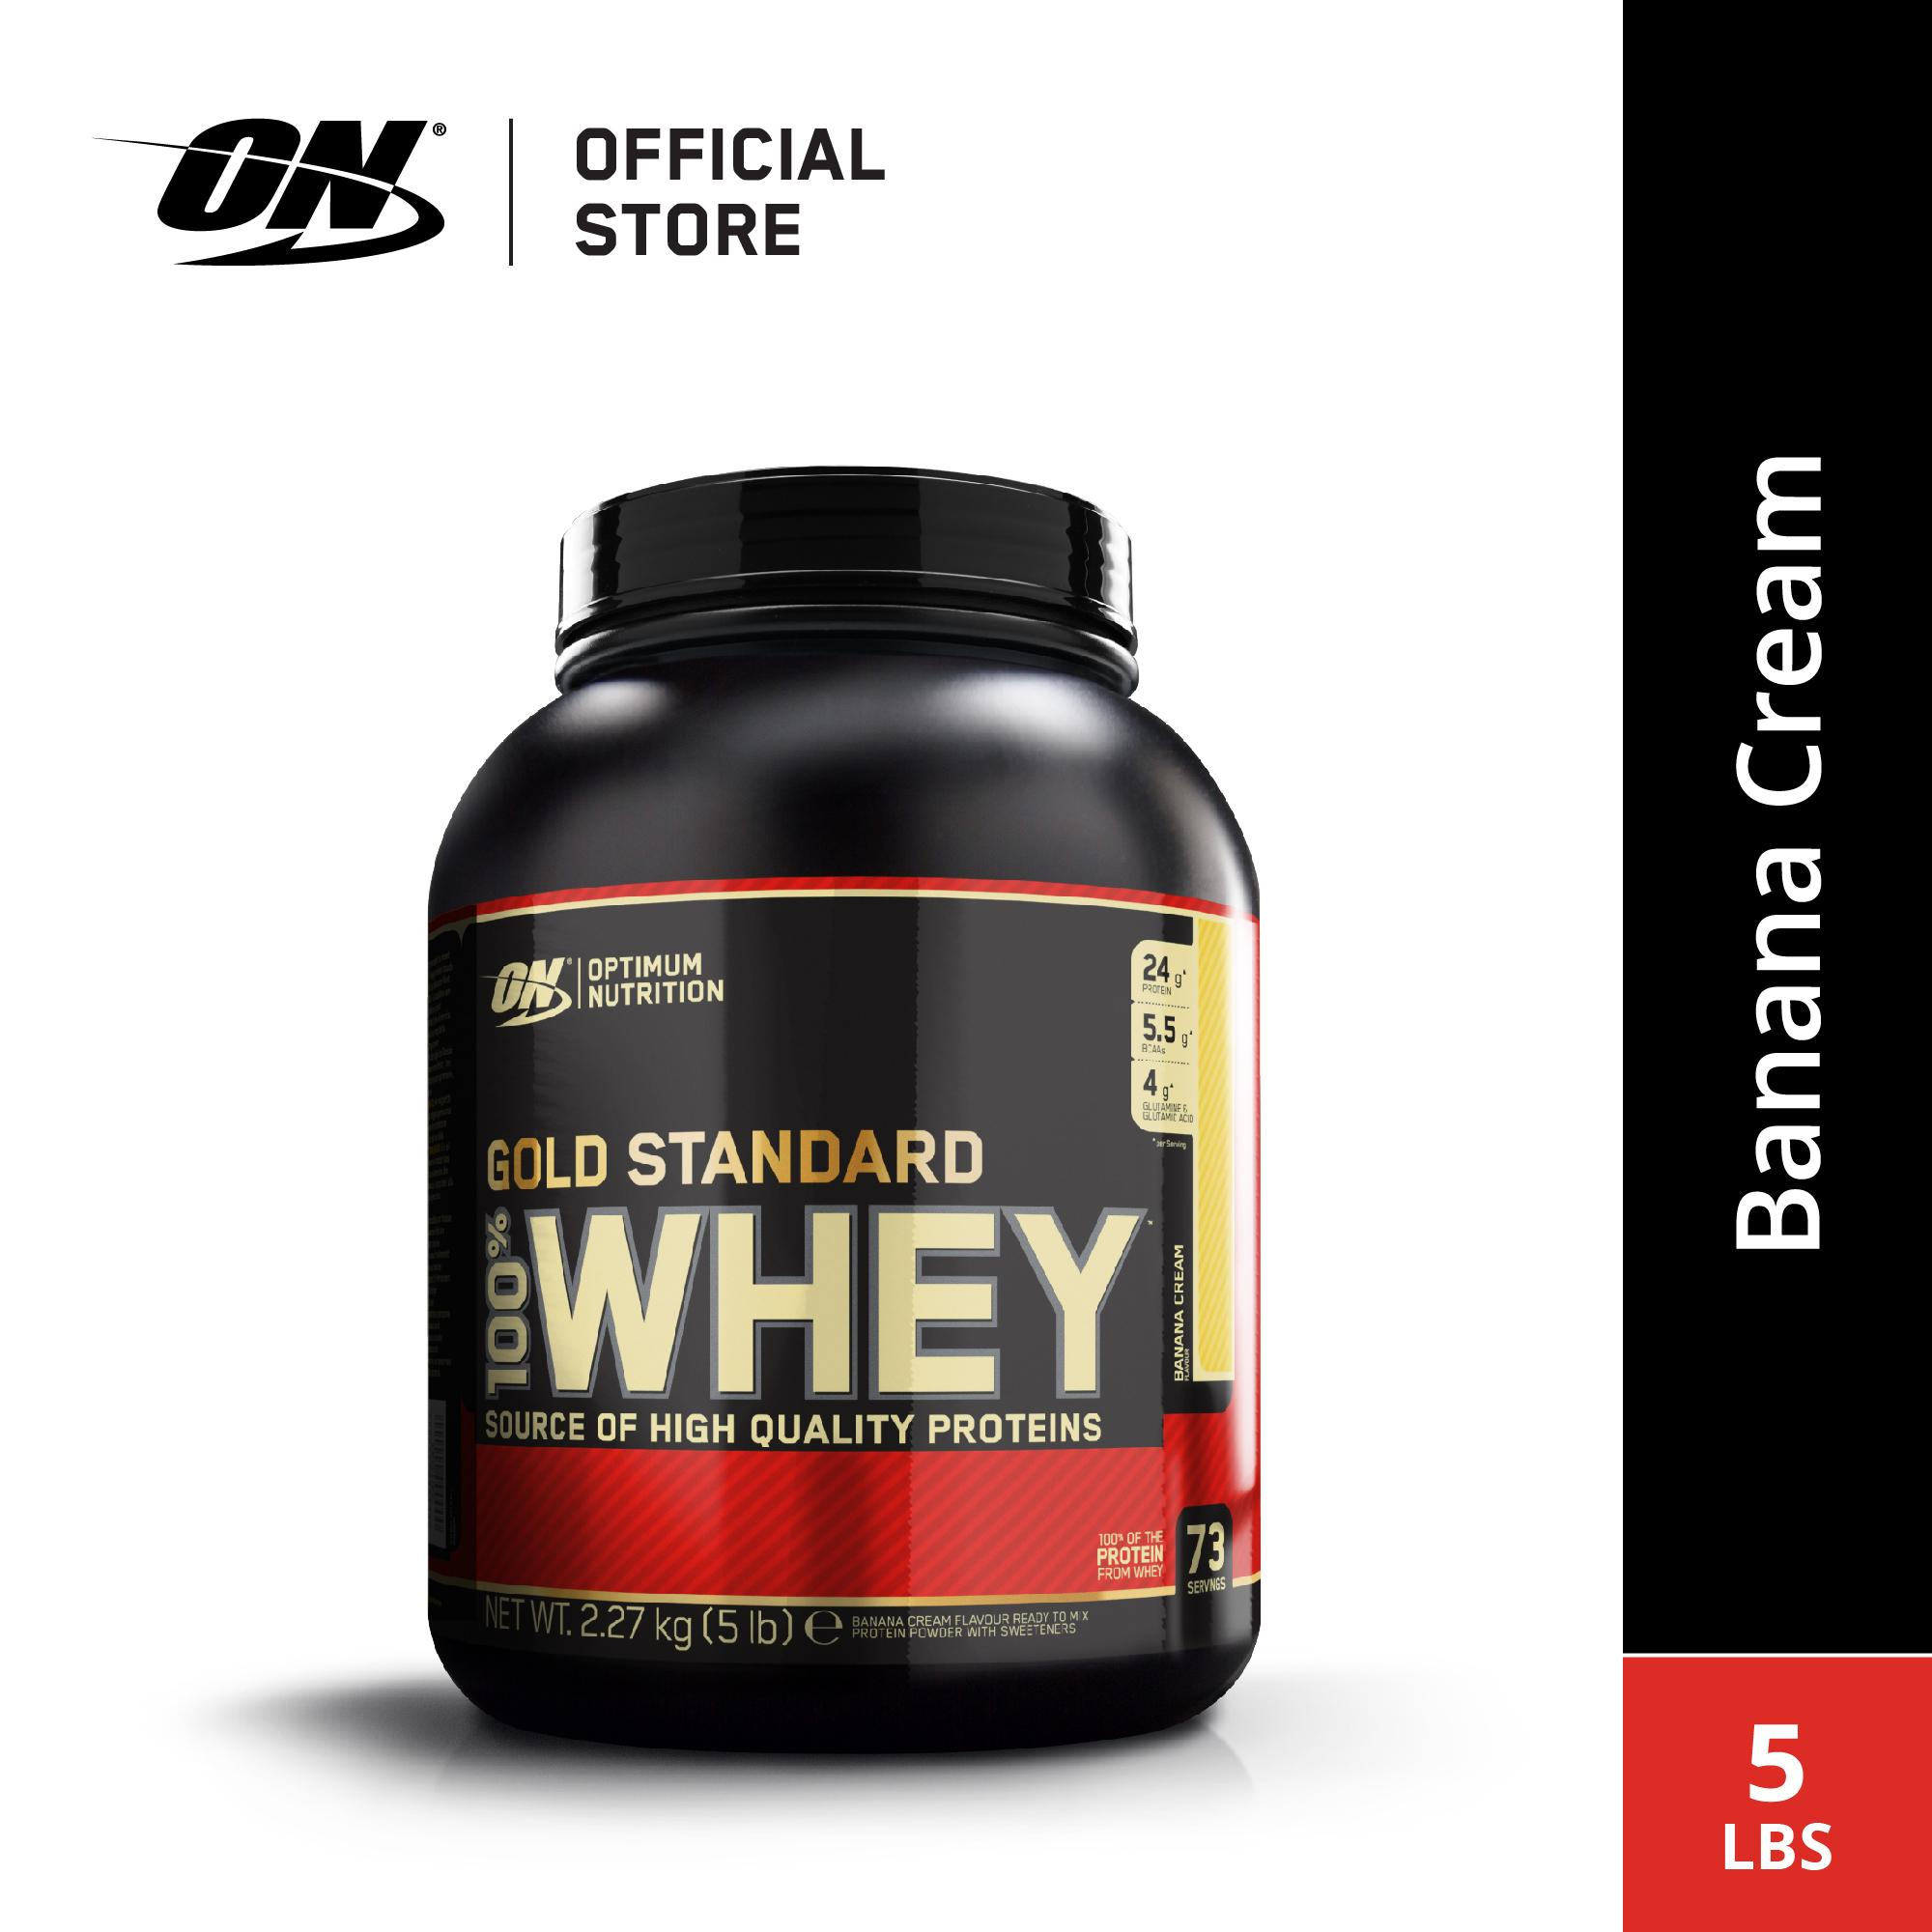 Optimum Nutrition Whey Gold Standard 5 Lbs - Banana By Sport N Body Fit